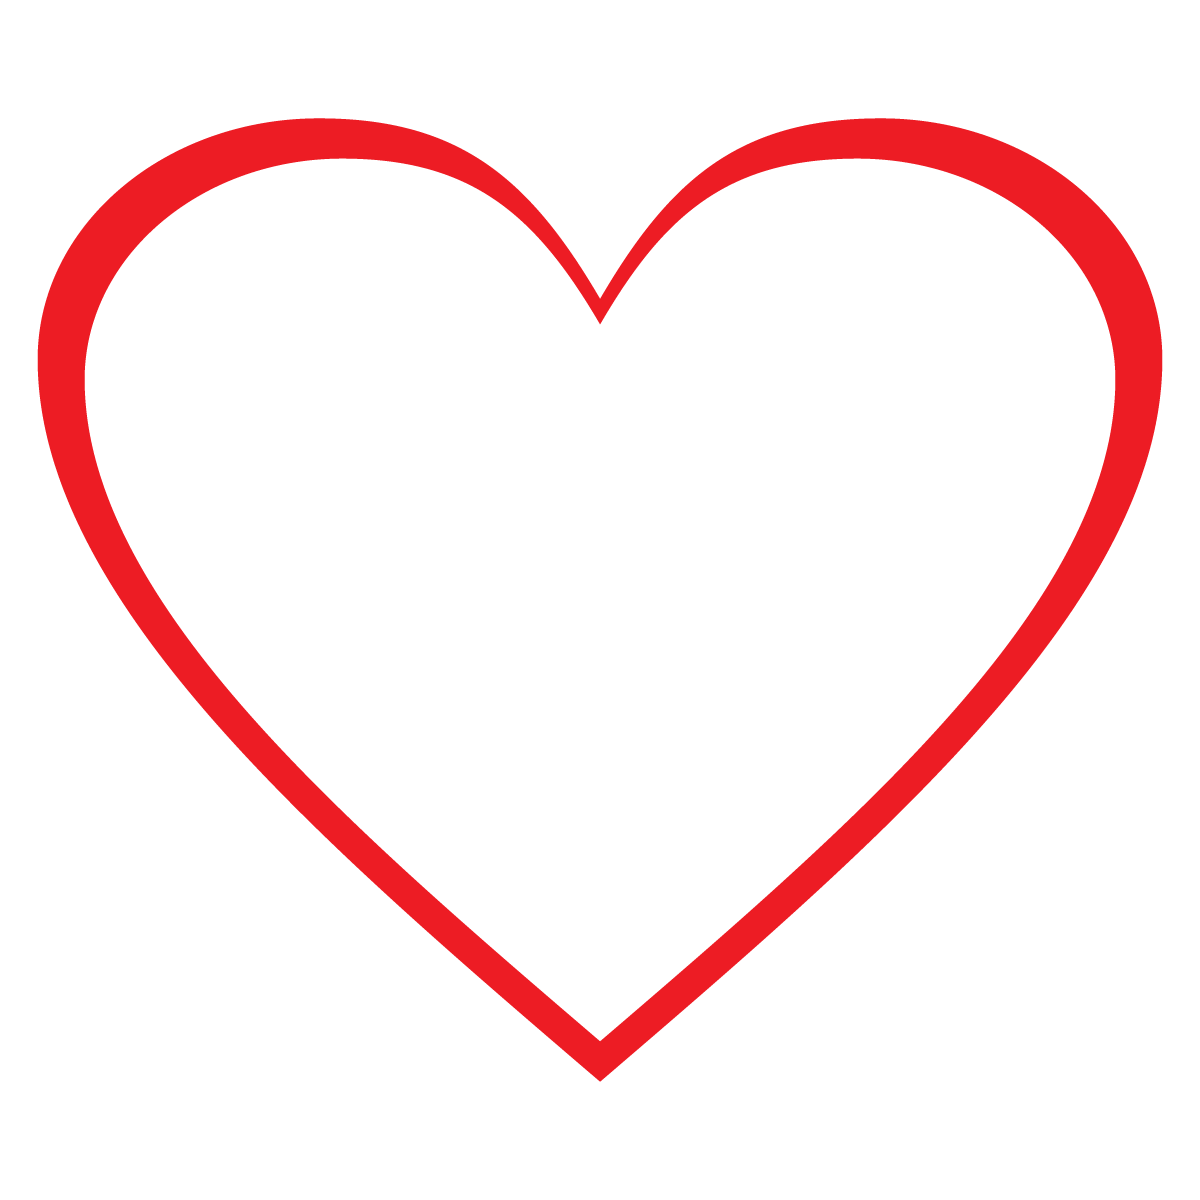 1200x1200 Free Heart Images